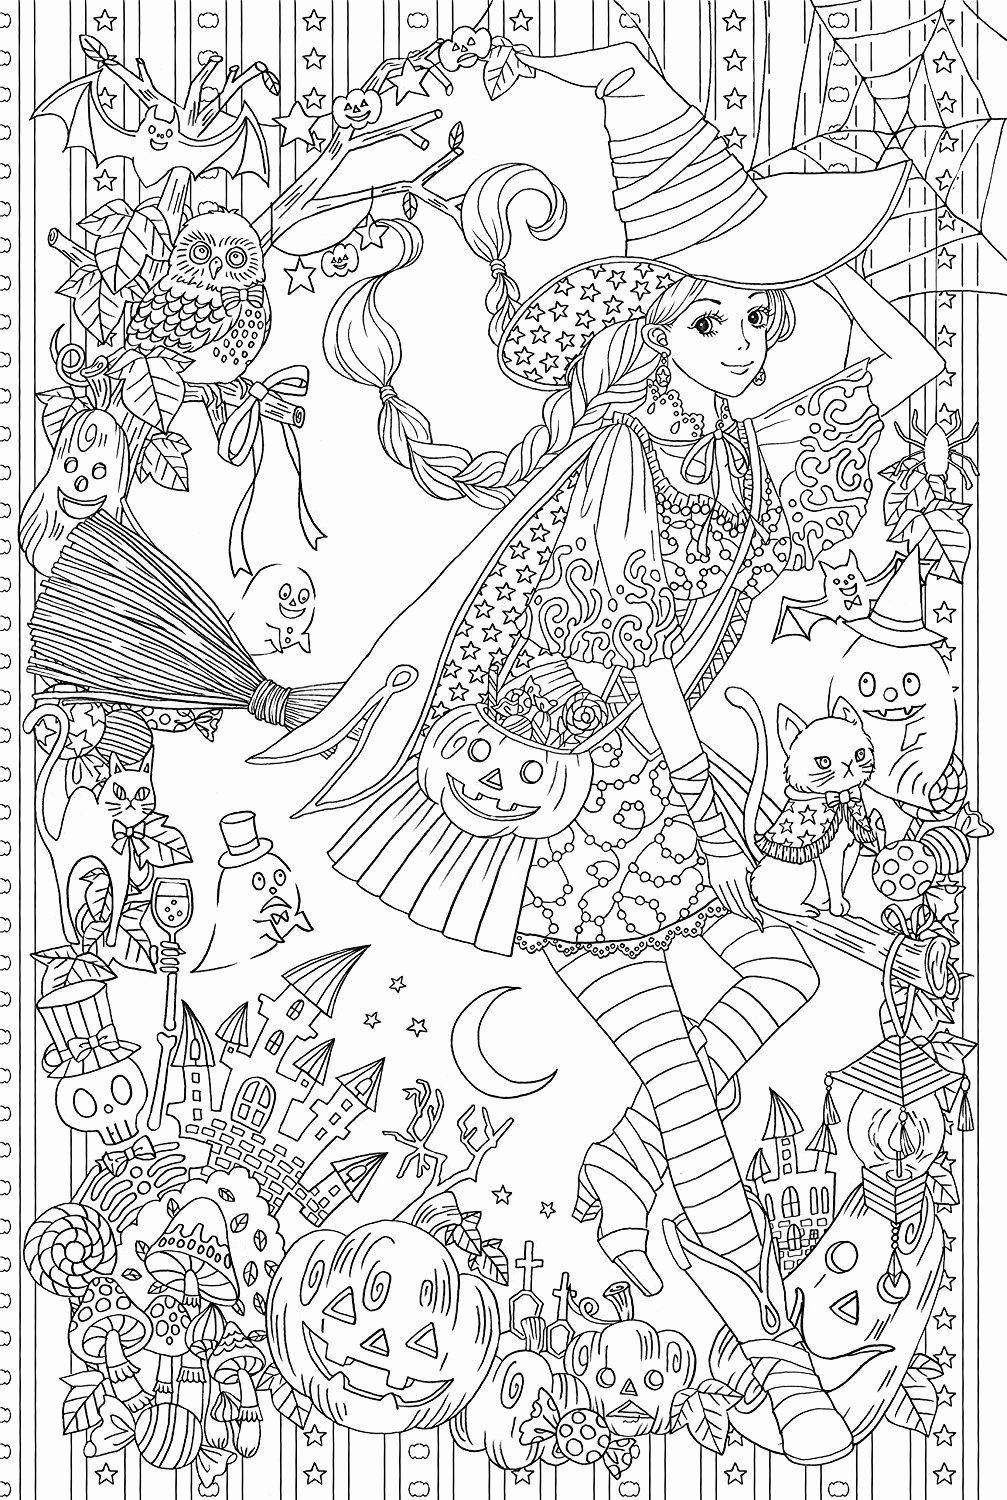 Coloring Book Halloween Costume Elegant A œa A ÿa A Aƒ A A A A Sa œa A A Scµµ Aƒ Aƒ Aƒ Coloring Books Halloween Coloring Book Halloween Coloring Pages